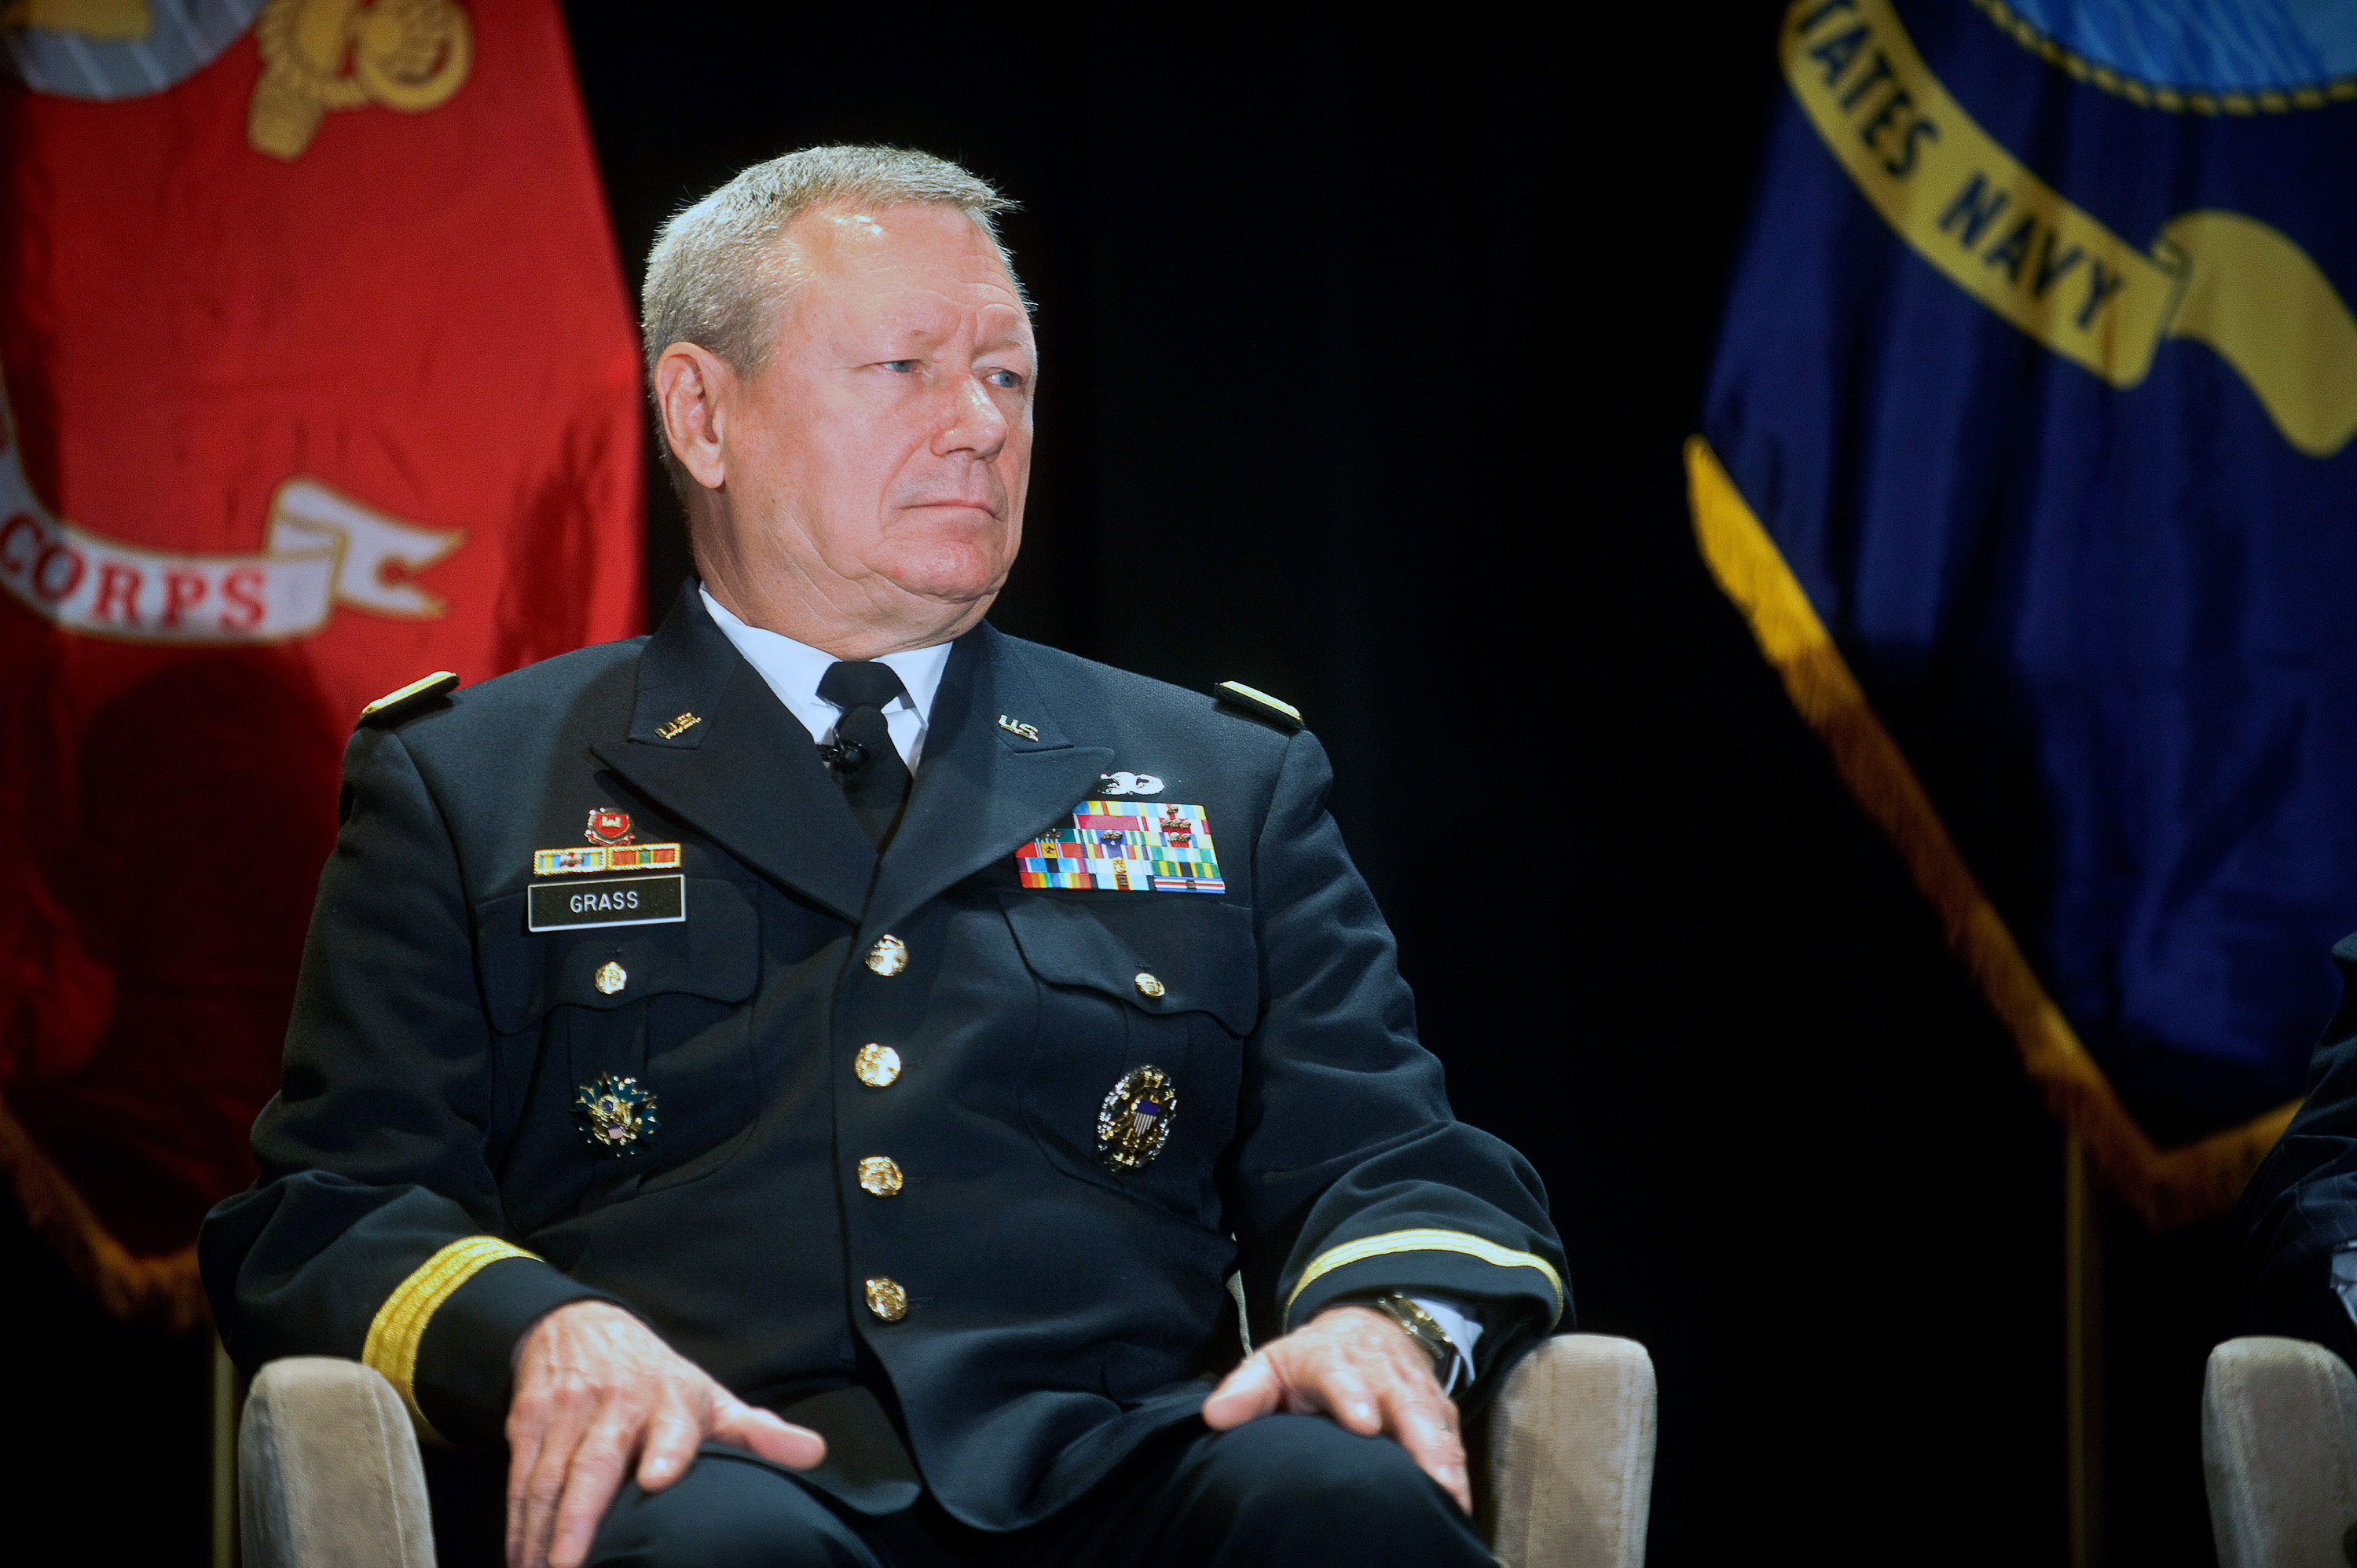 Chiefs: National Guard, reserves should remain strong ...